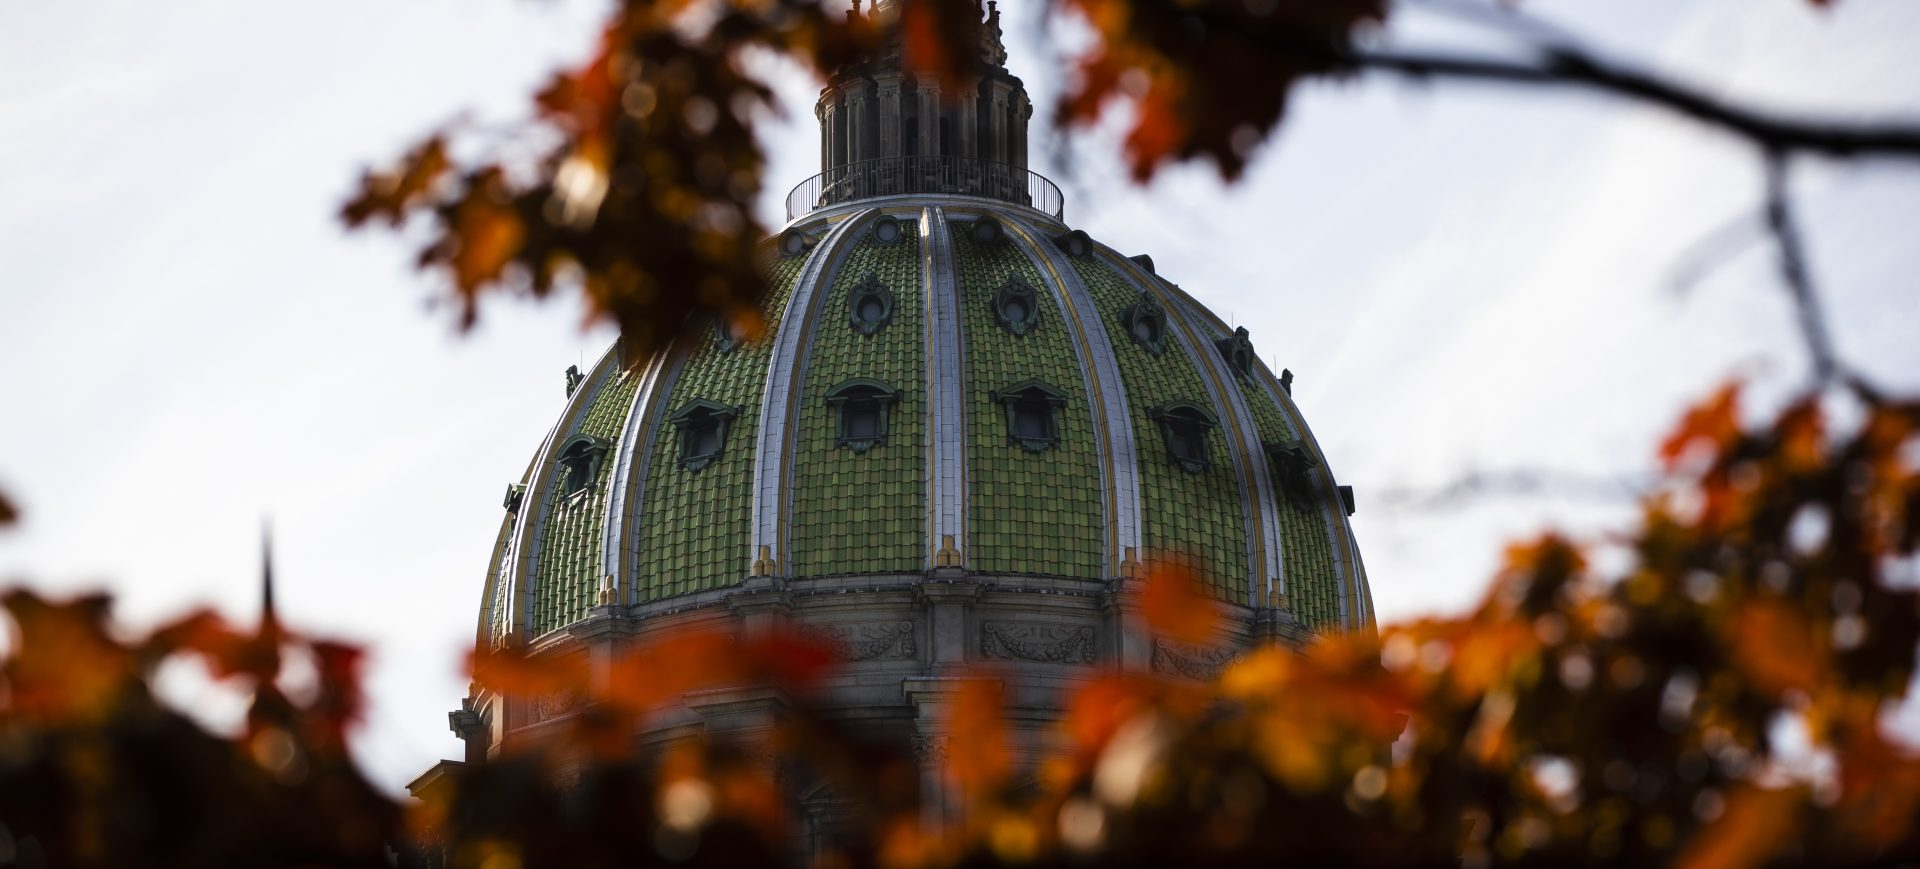 FILE PHOTO: In this file photo from Nov. 19, 2019, the dome of the Pennsylvania Capitol is visible through the fall trees in Harrisburg, Pa.